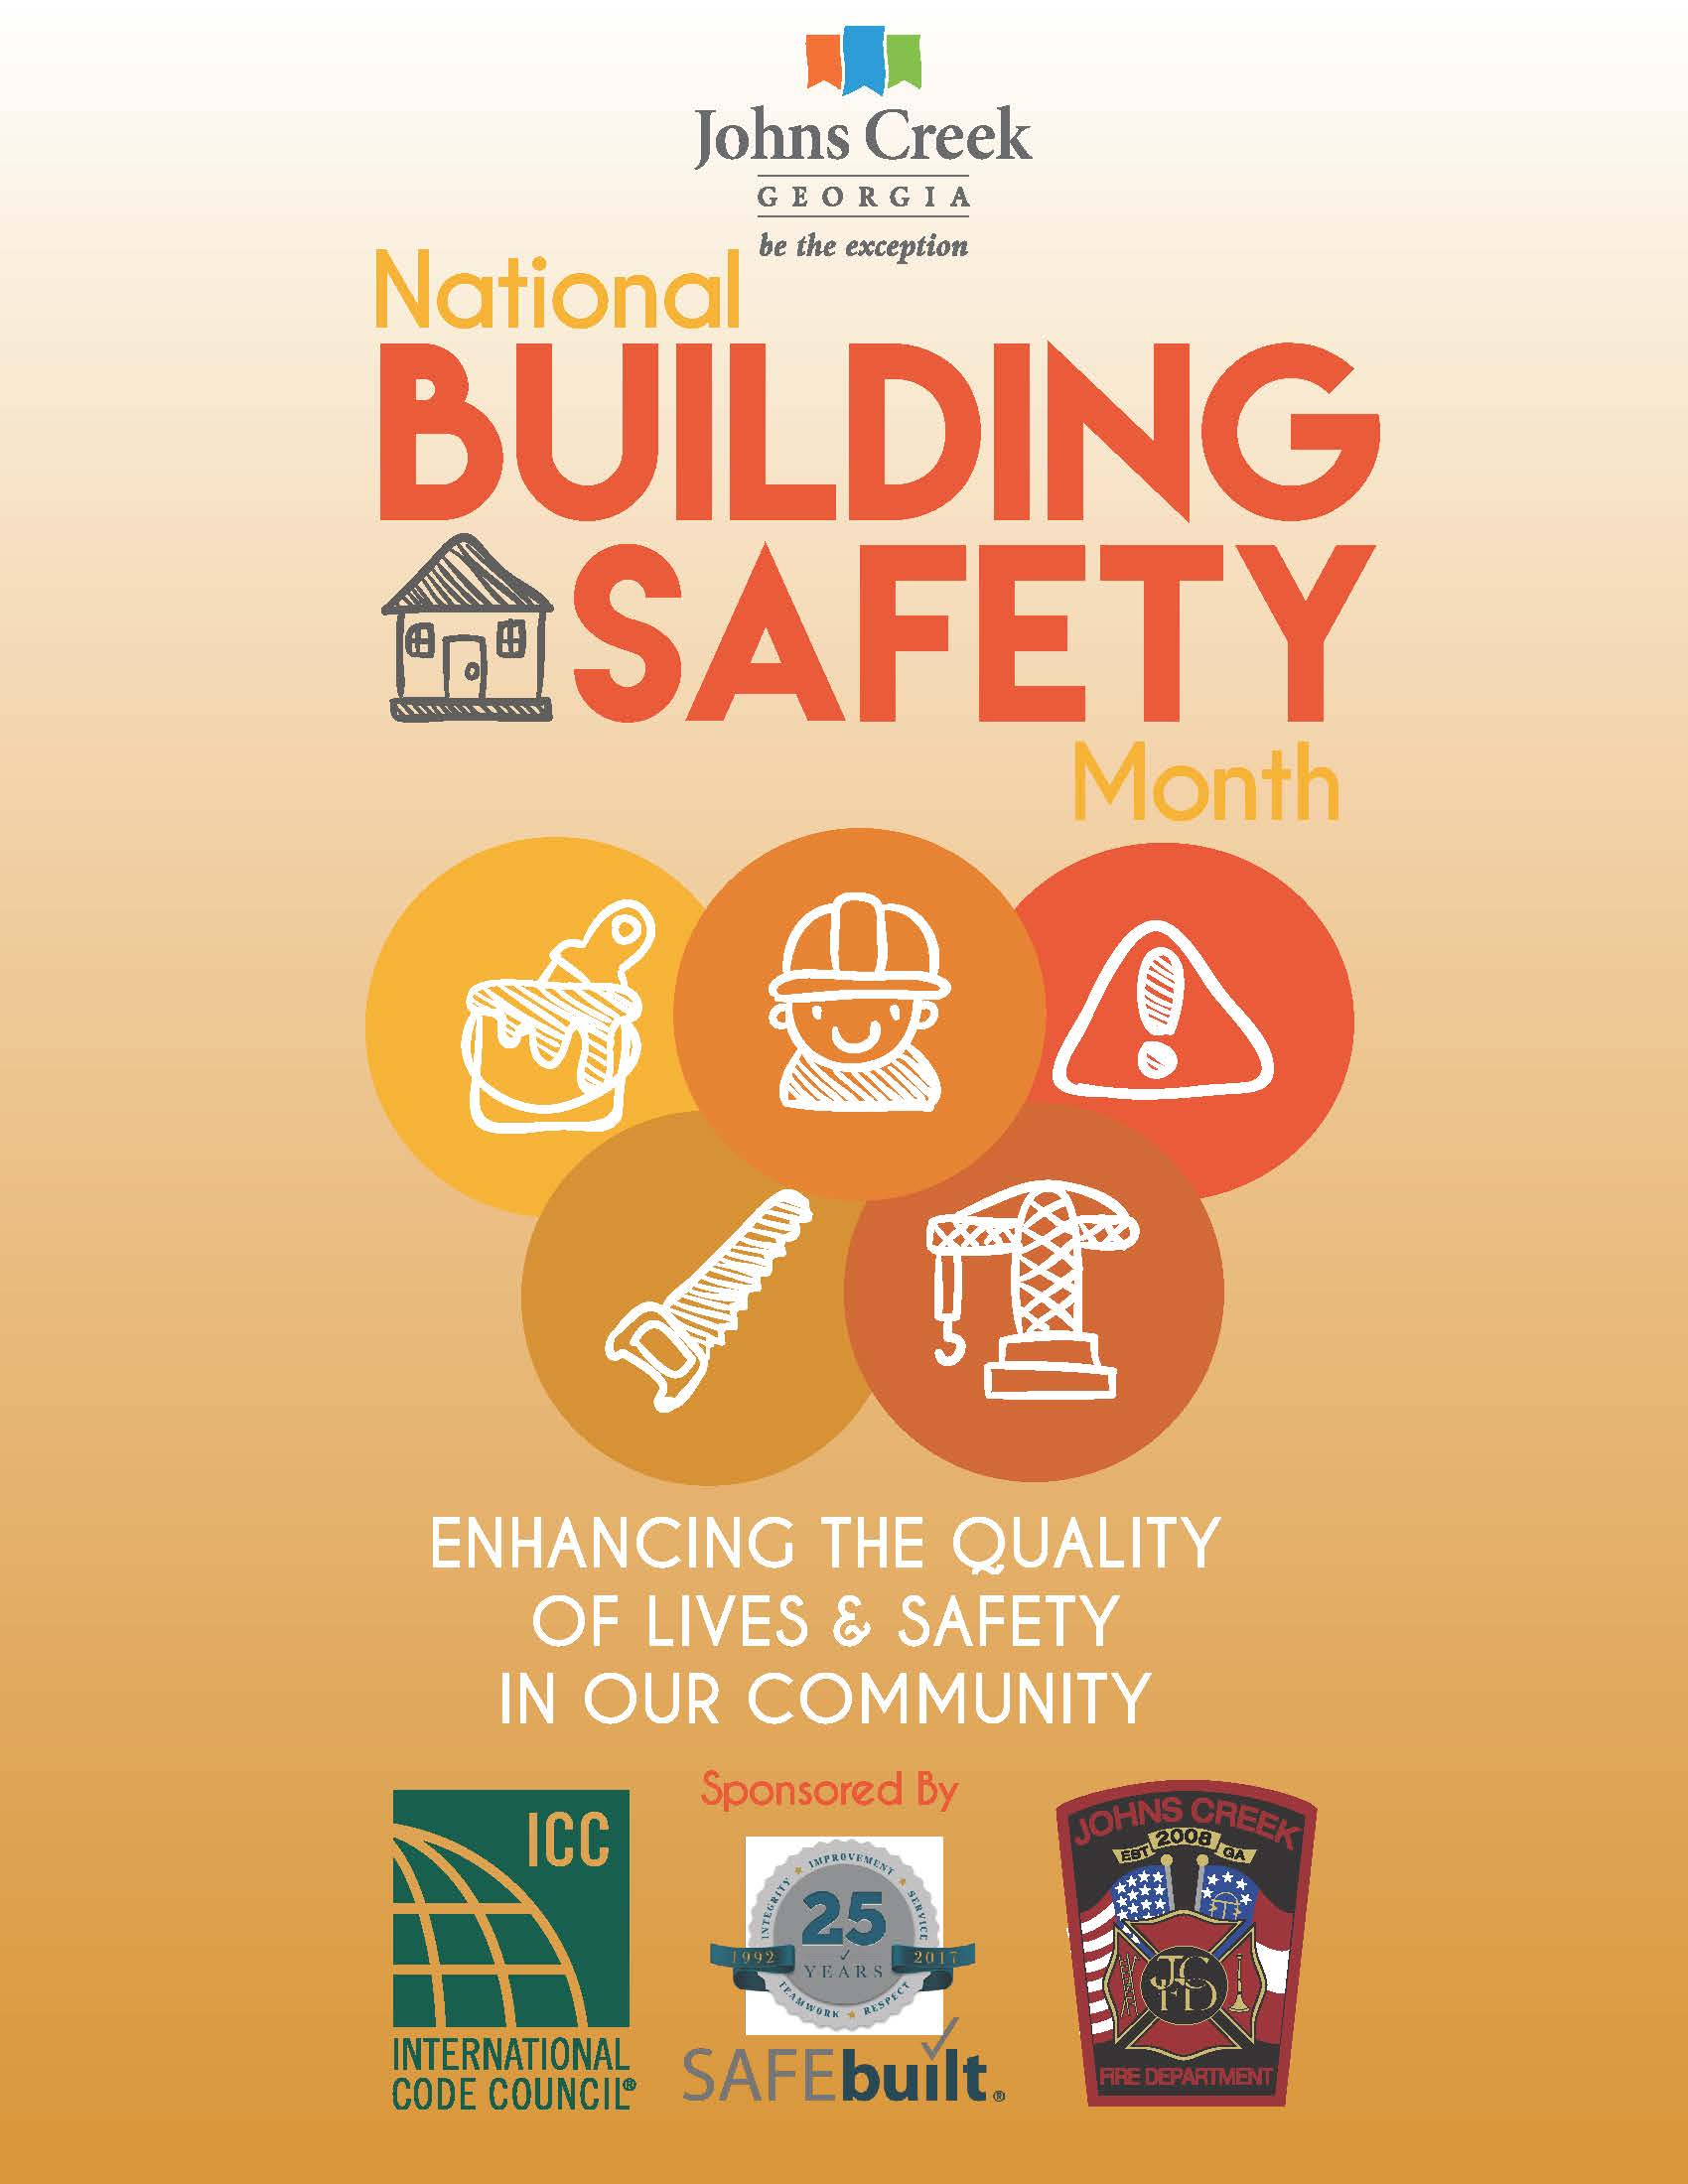 Johns Creek to participate in Building Safety Month event May 6